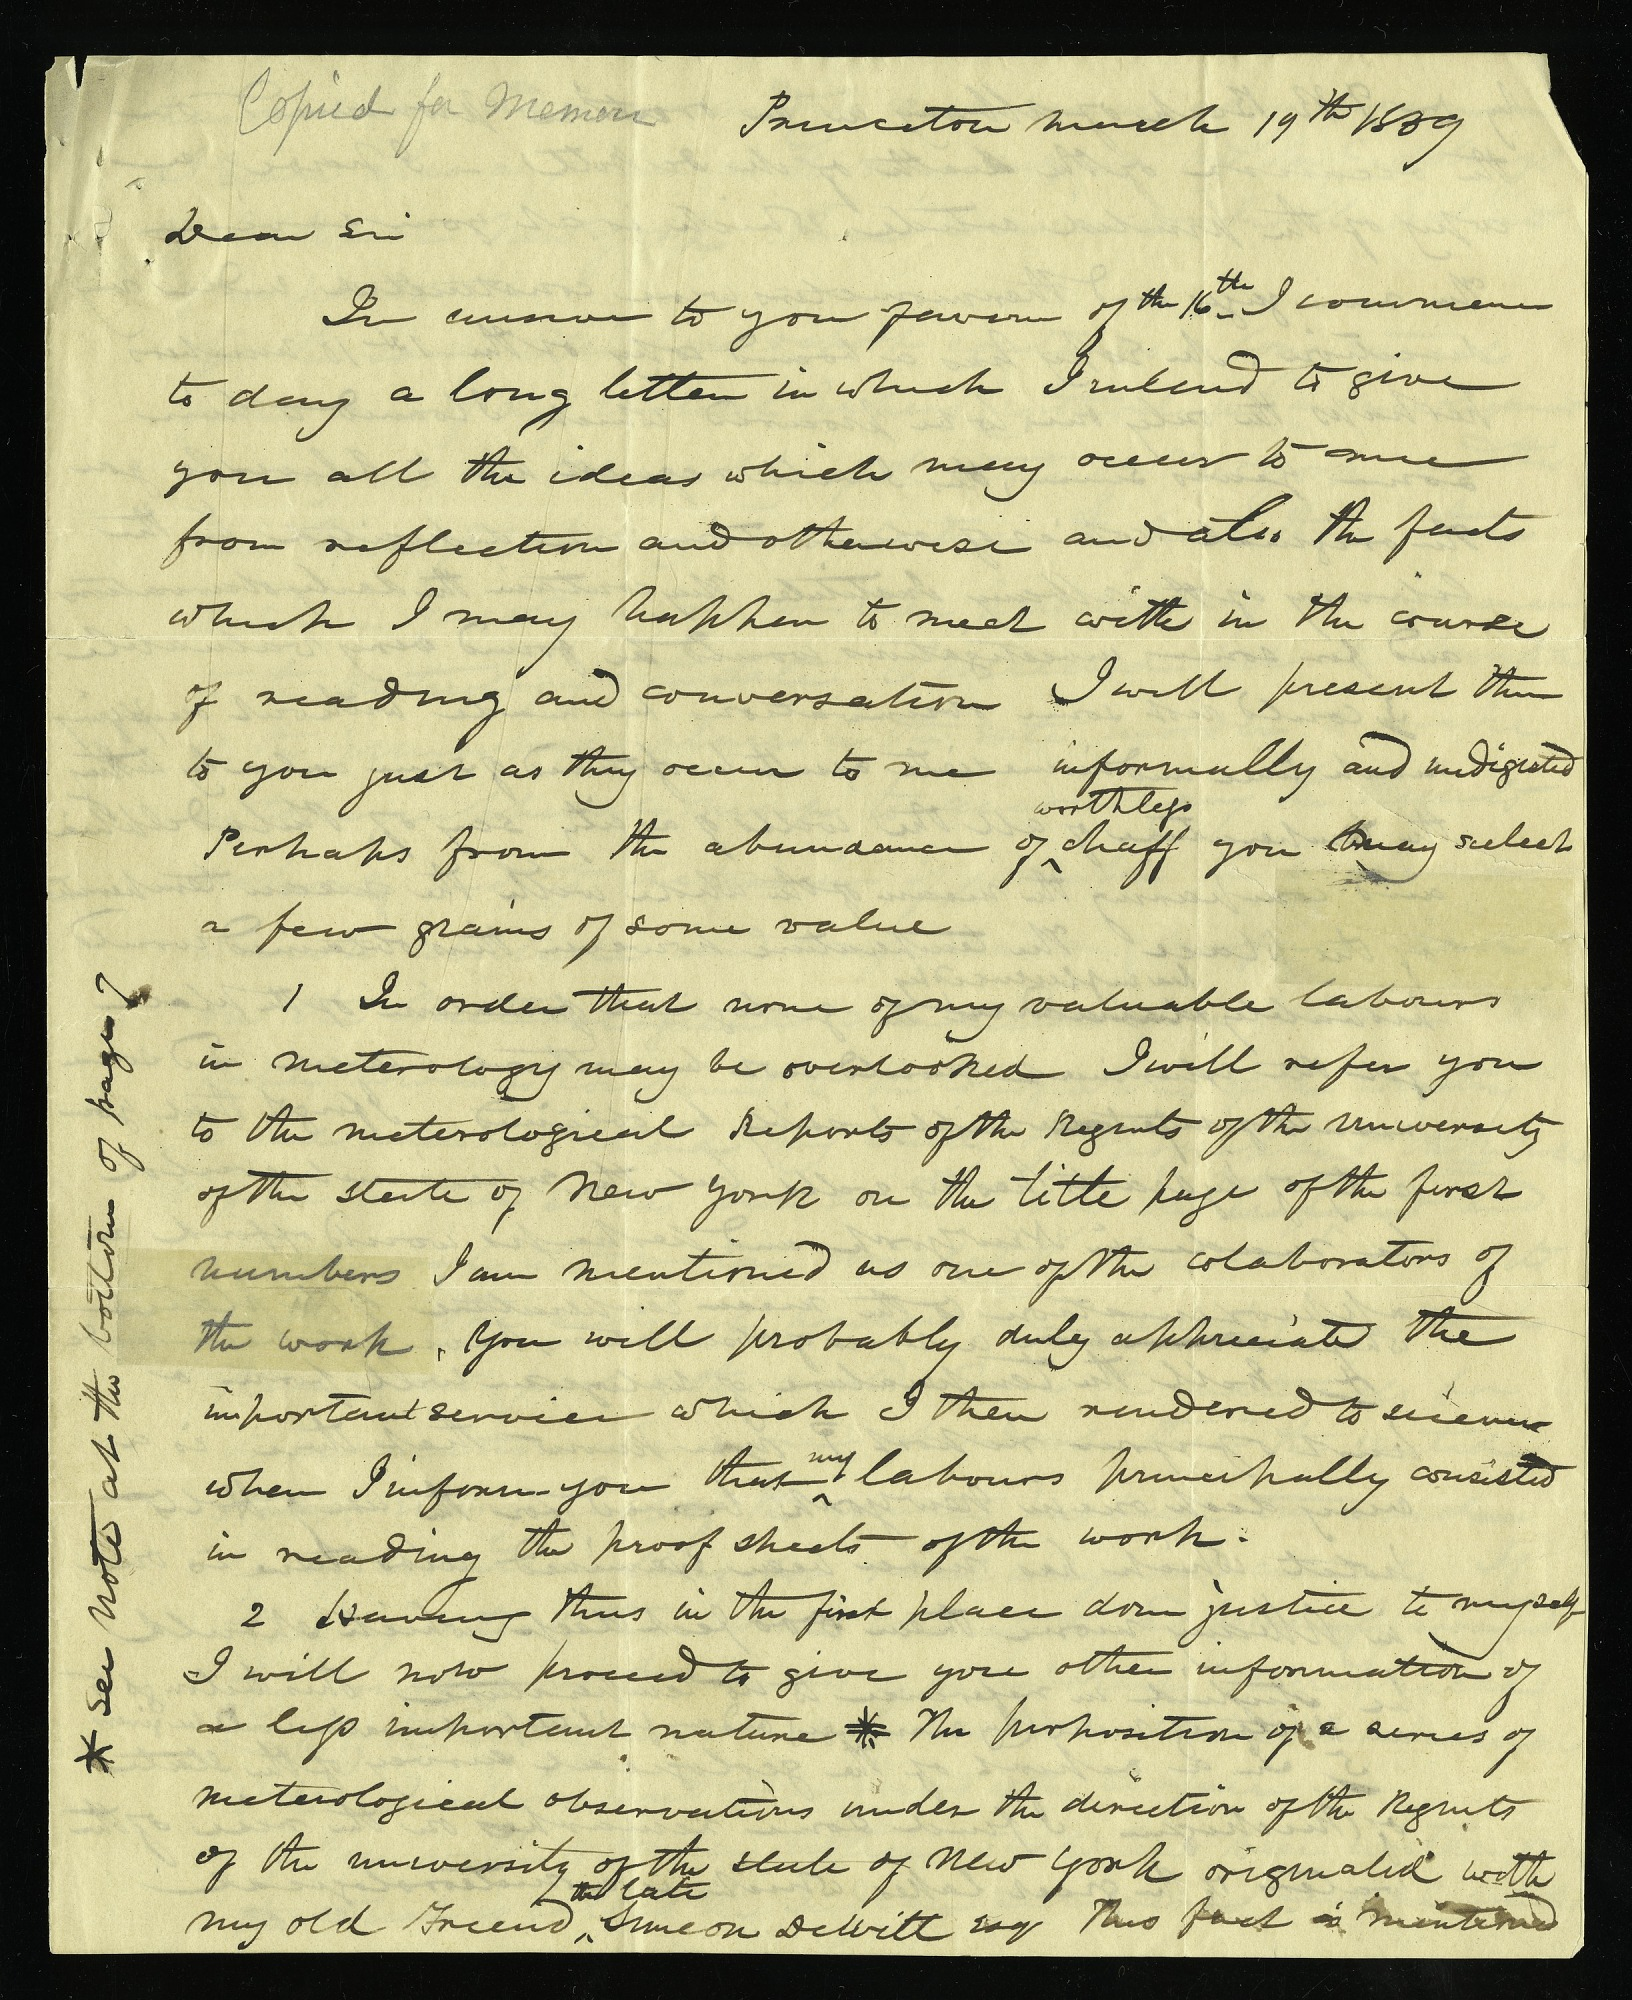 Joseph Henry's Letter to Alexander Dallas Bache (March 19-27, 1839)